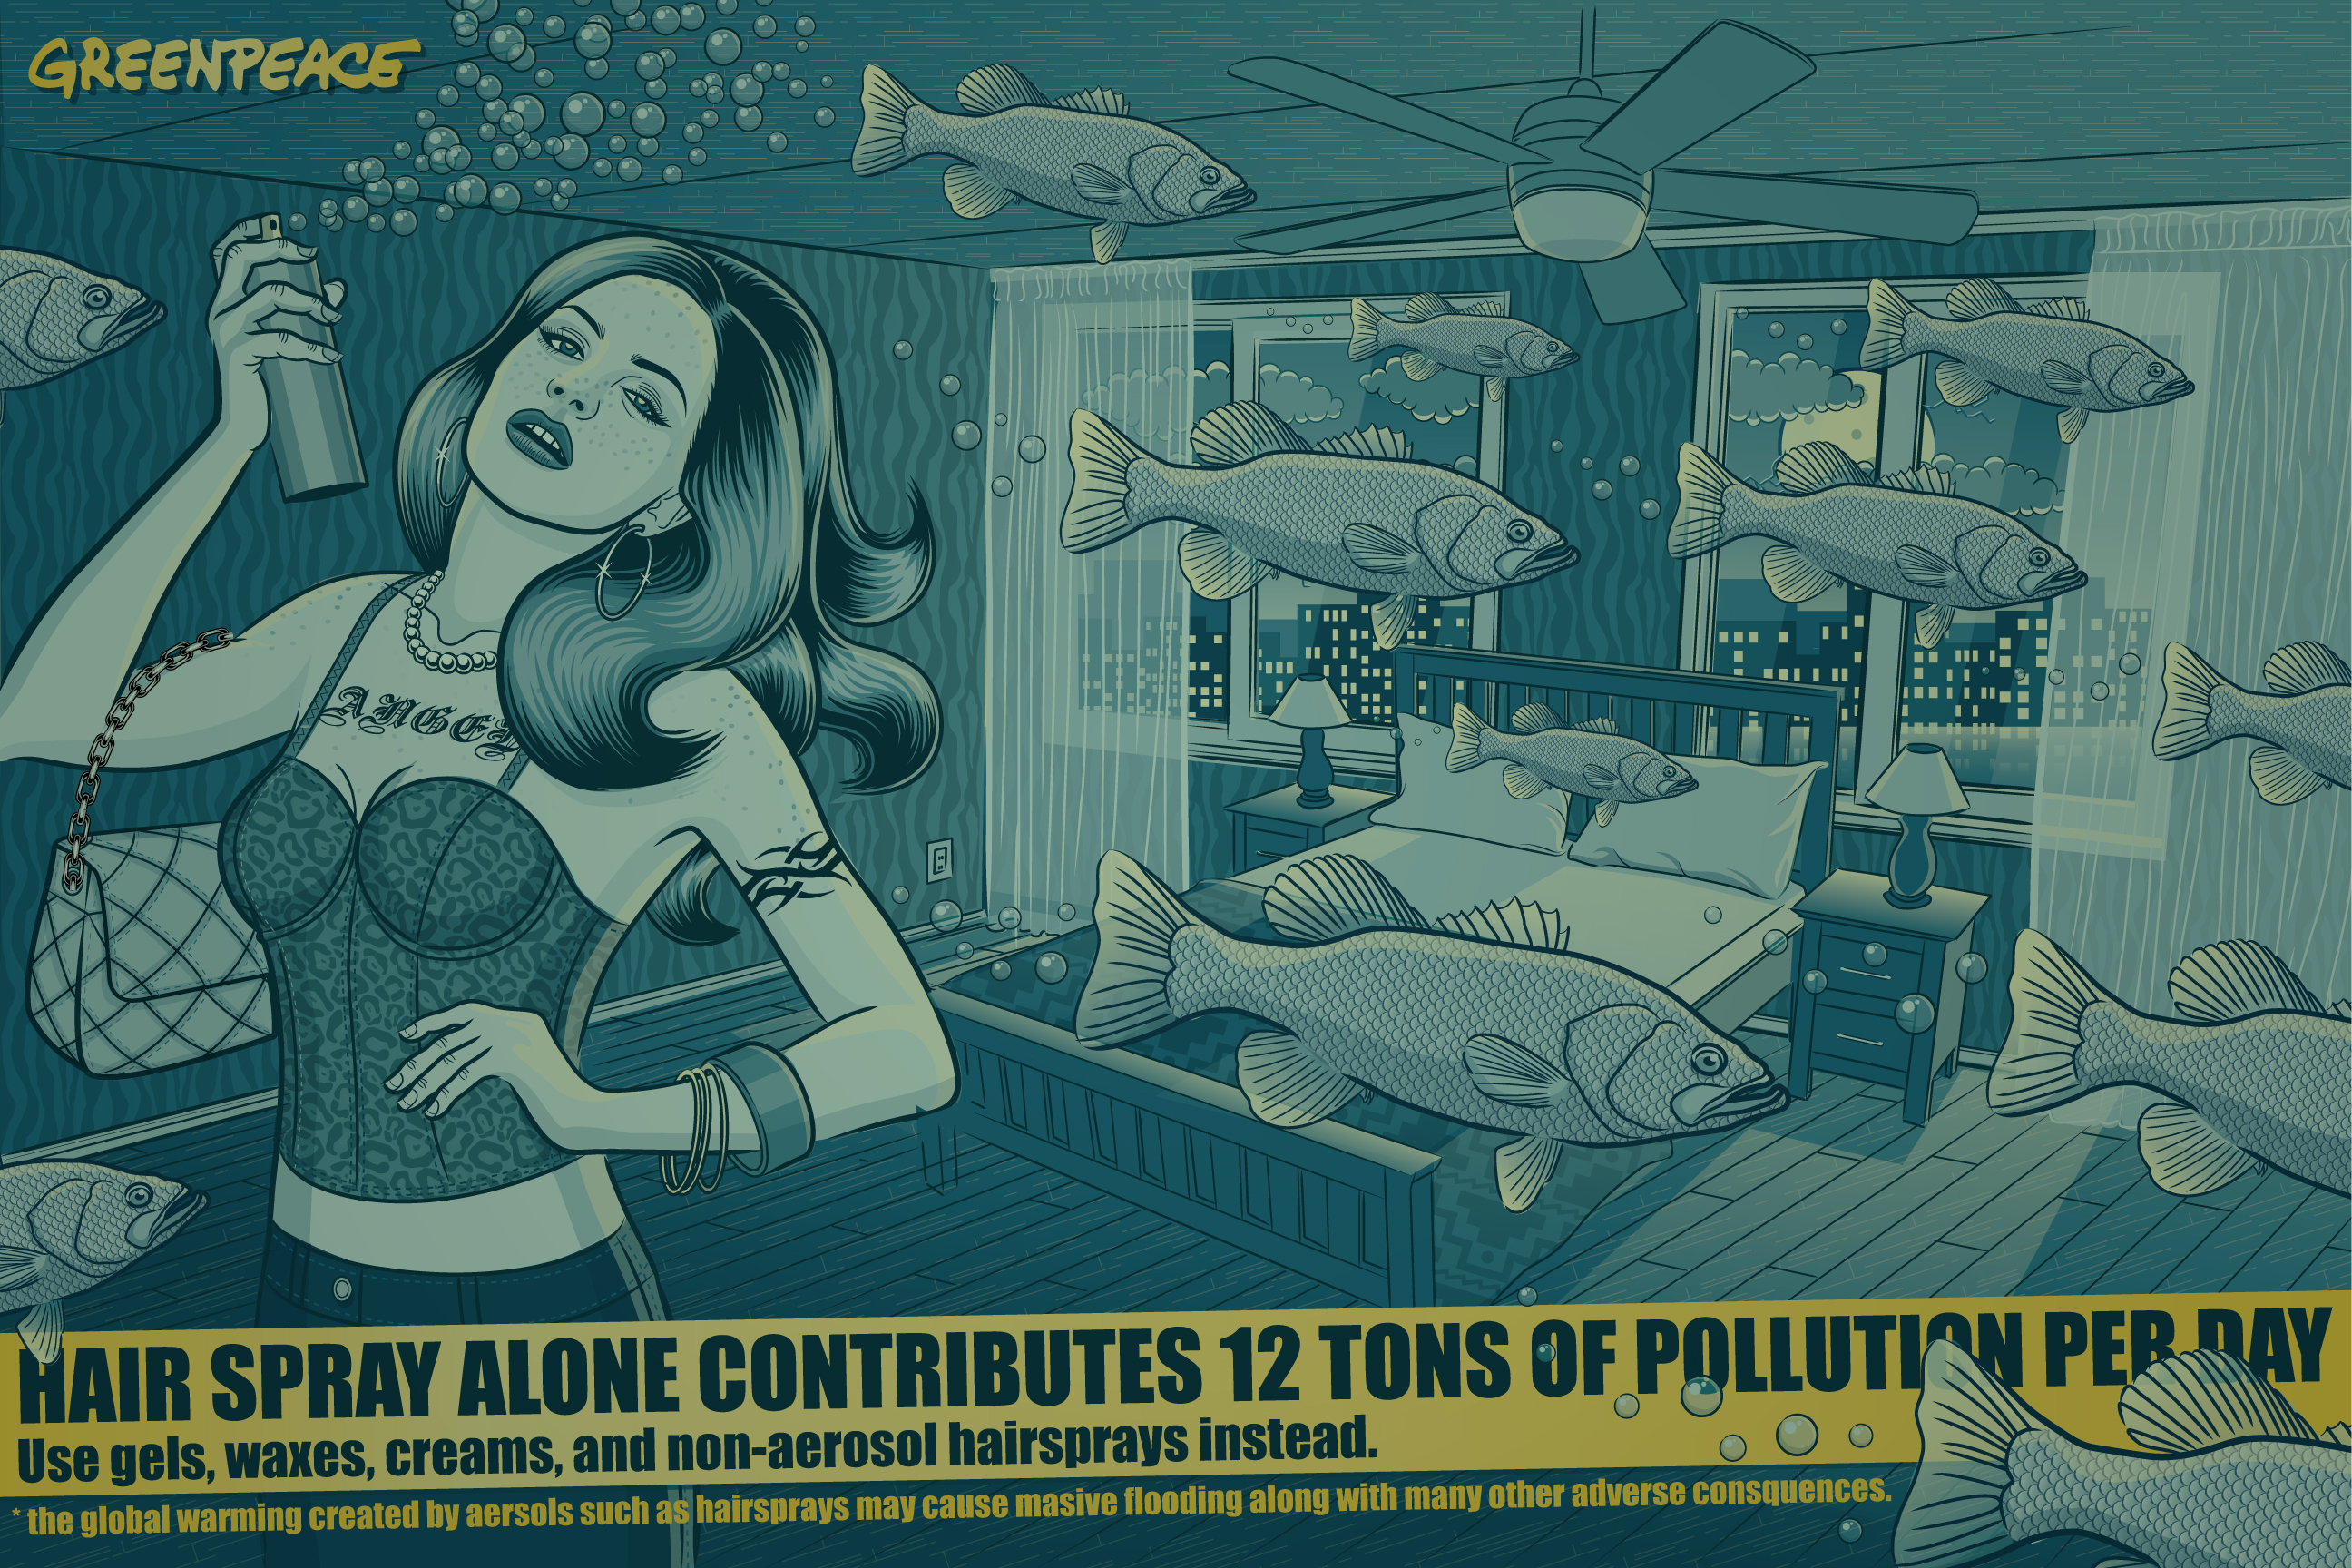 Sleeping with the fishes by melissareneepohl on deviantart for Sleeping with the fishes